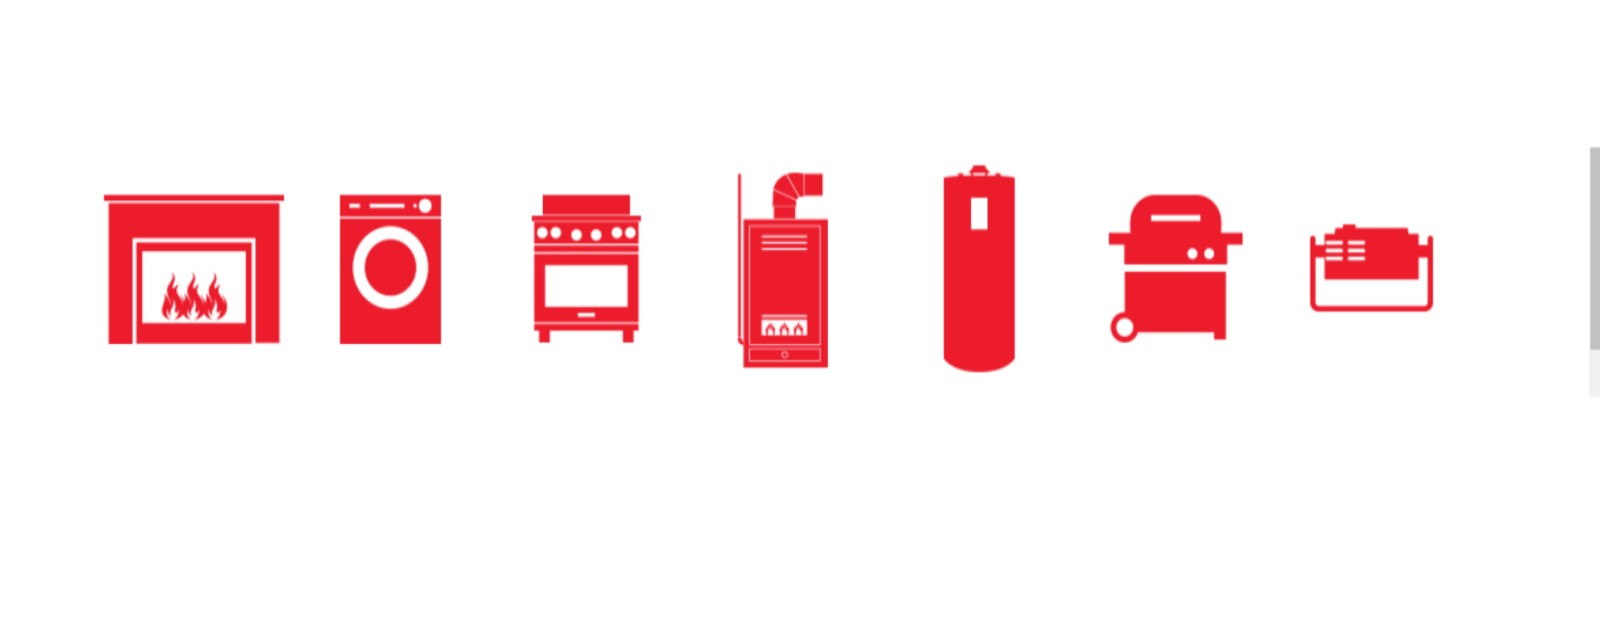 Icons of fuel burning appliances